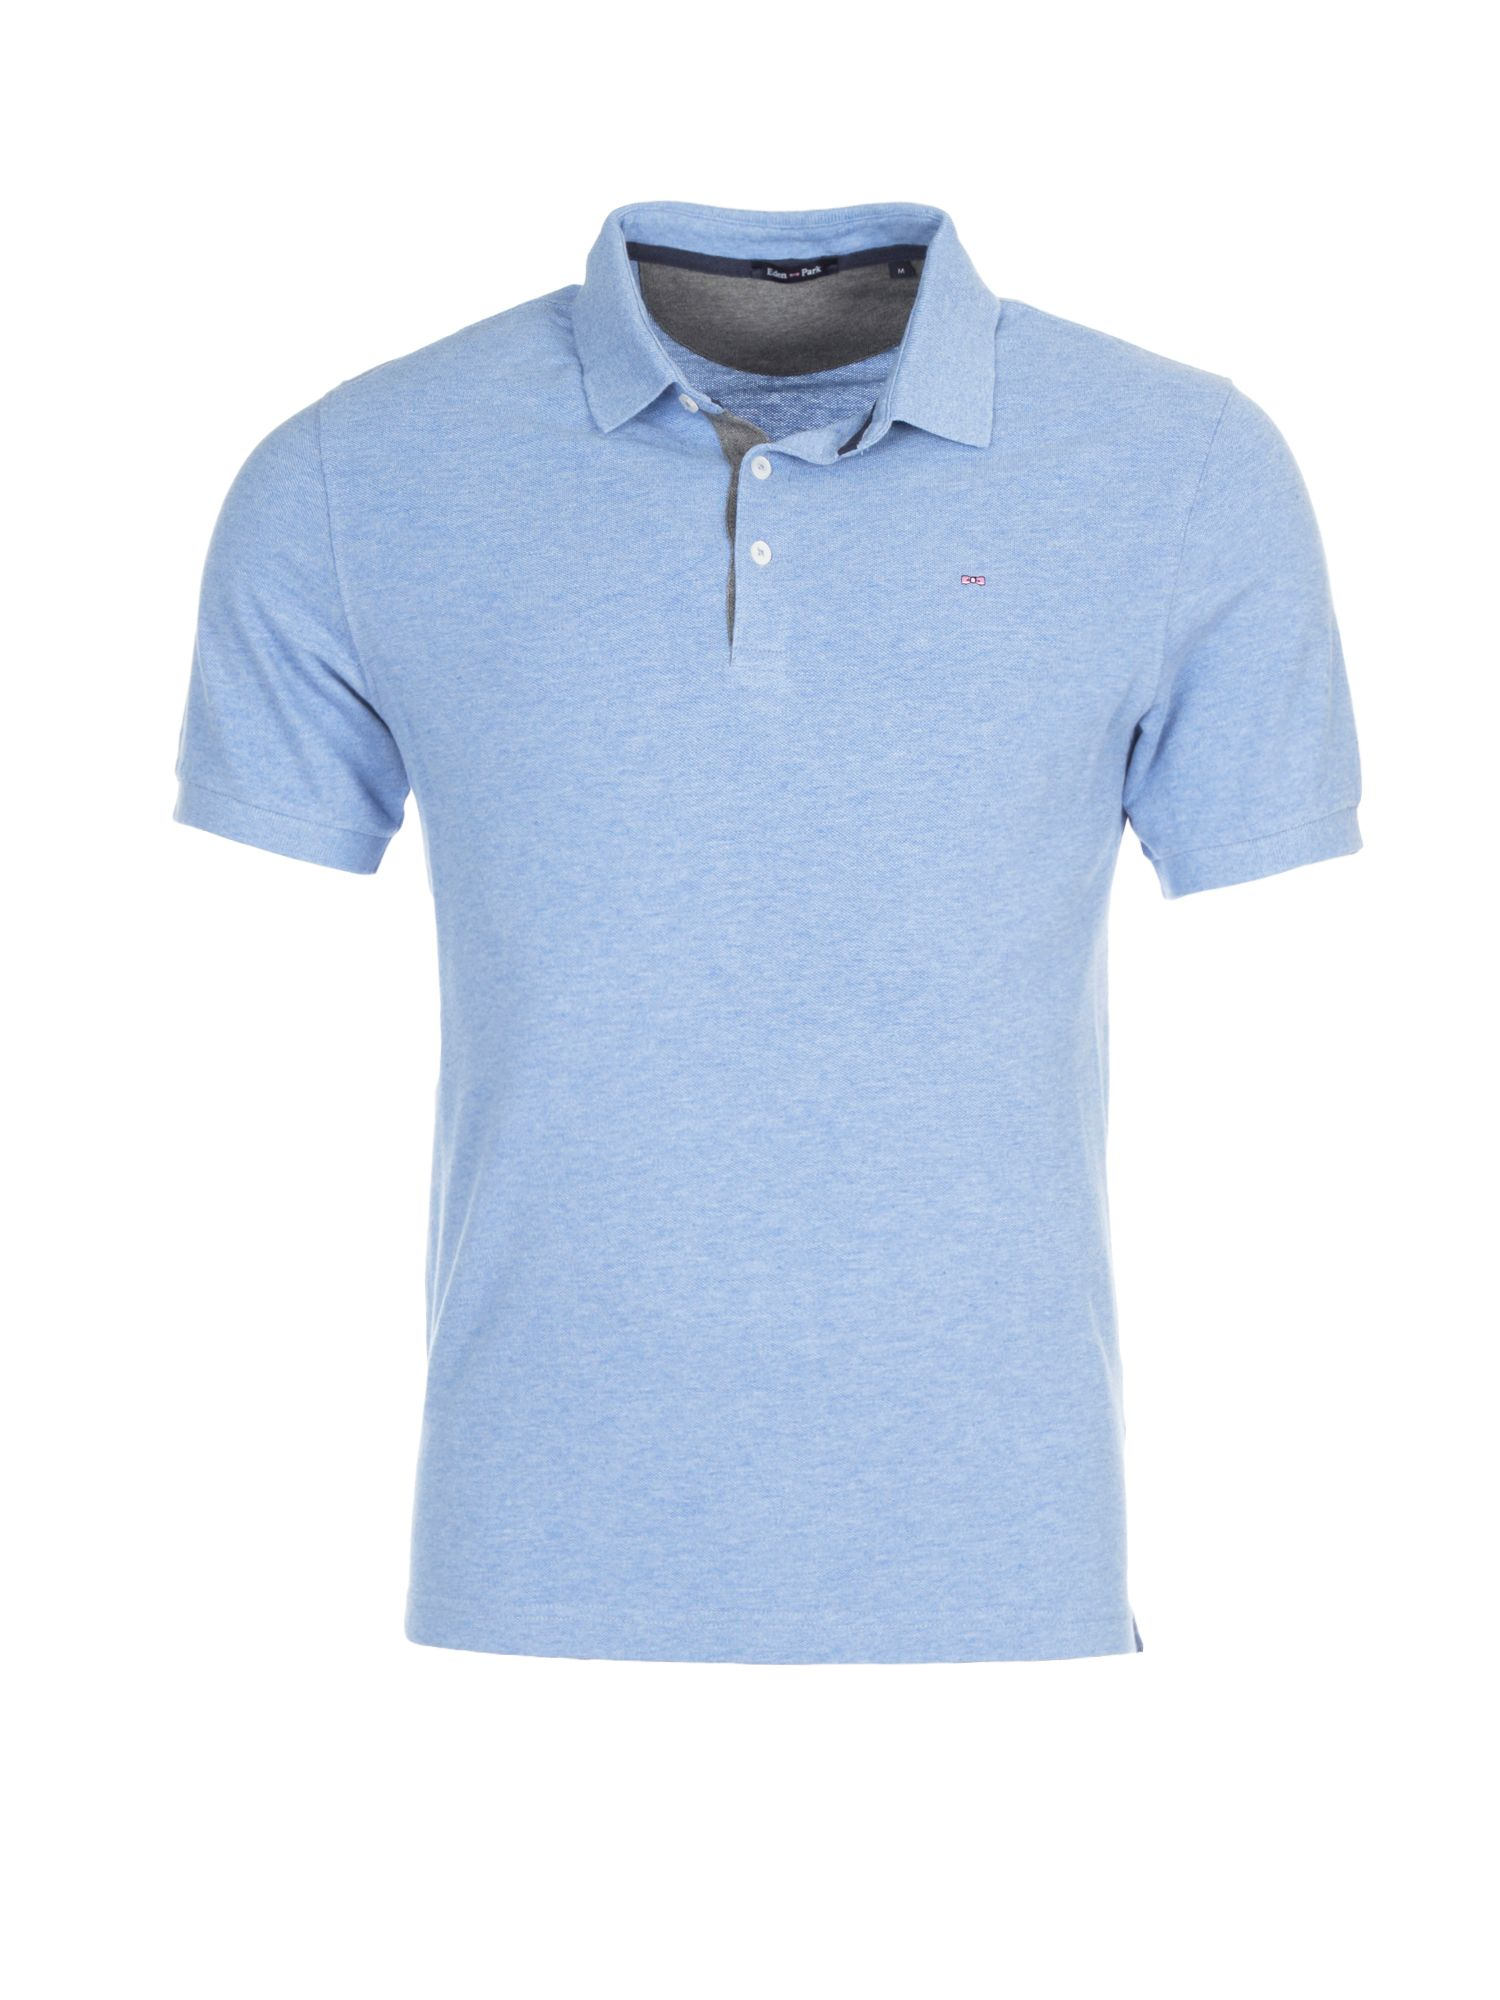 Men's Eden Park Cotton Polo Shirt, Blue